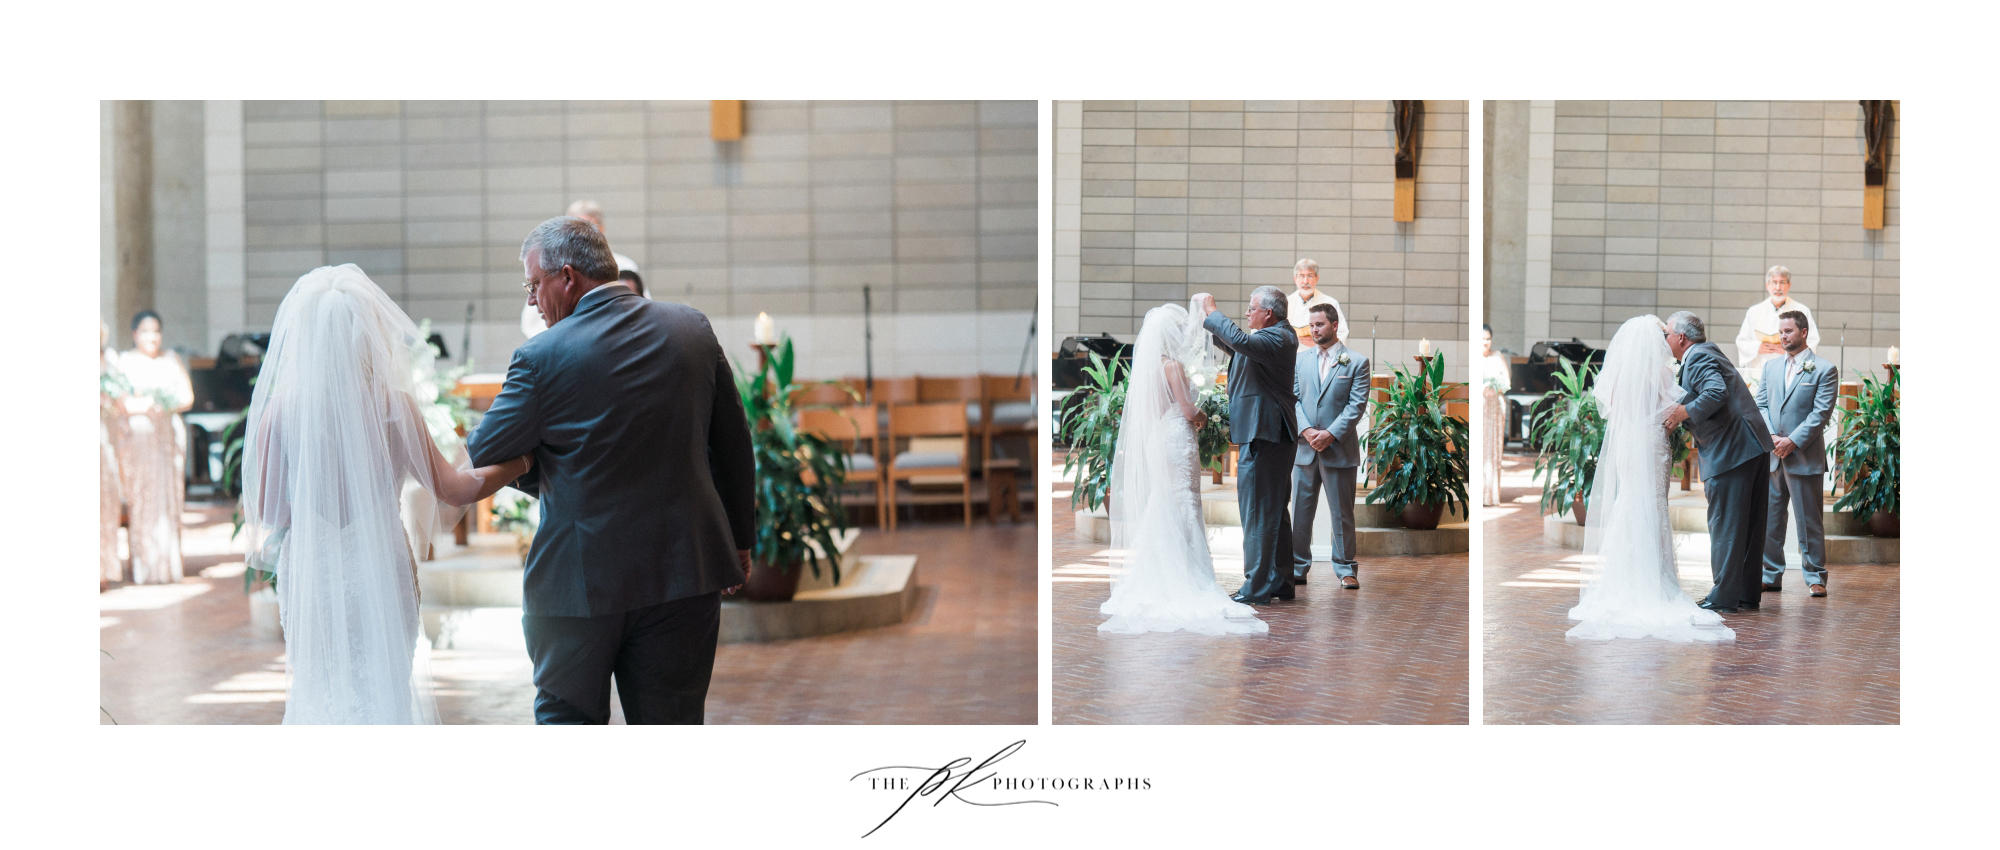 Being handed off by Dad is one of my favorite parts of the wedding ceremony. The end of one part of life, and the beginning of another!  St. Peter the Apostle Catholic Church | San Antonio Wedding Photographer